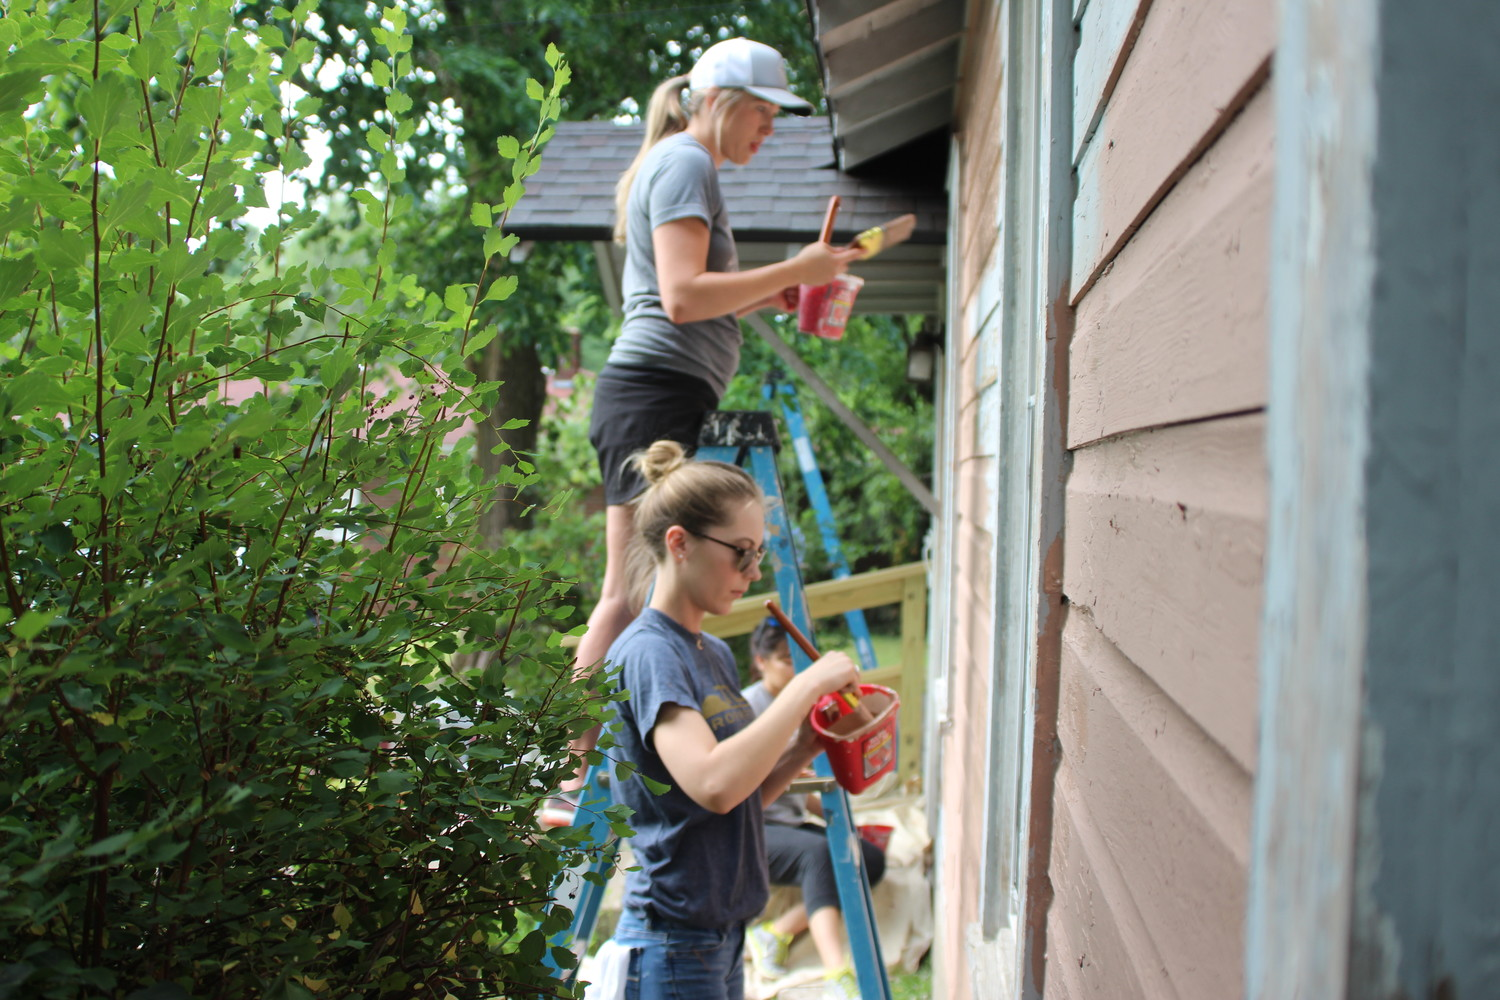 Volunteers paint a home in Woodland Heights during a June Rock the Block neighborhood cleanup event.